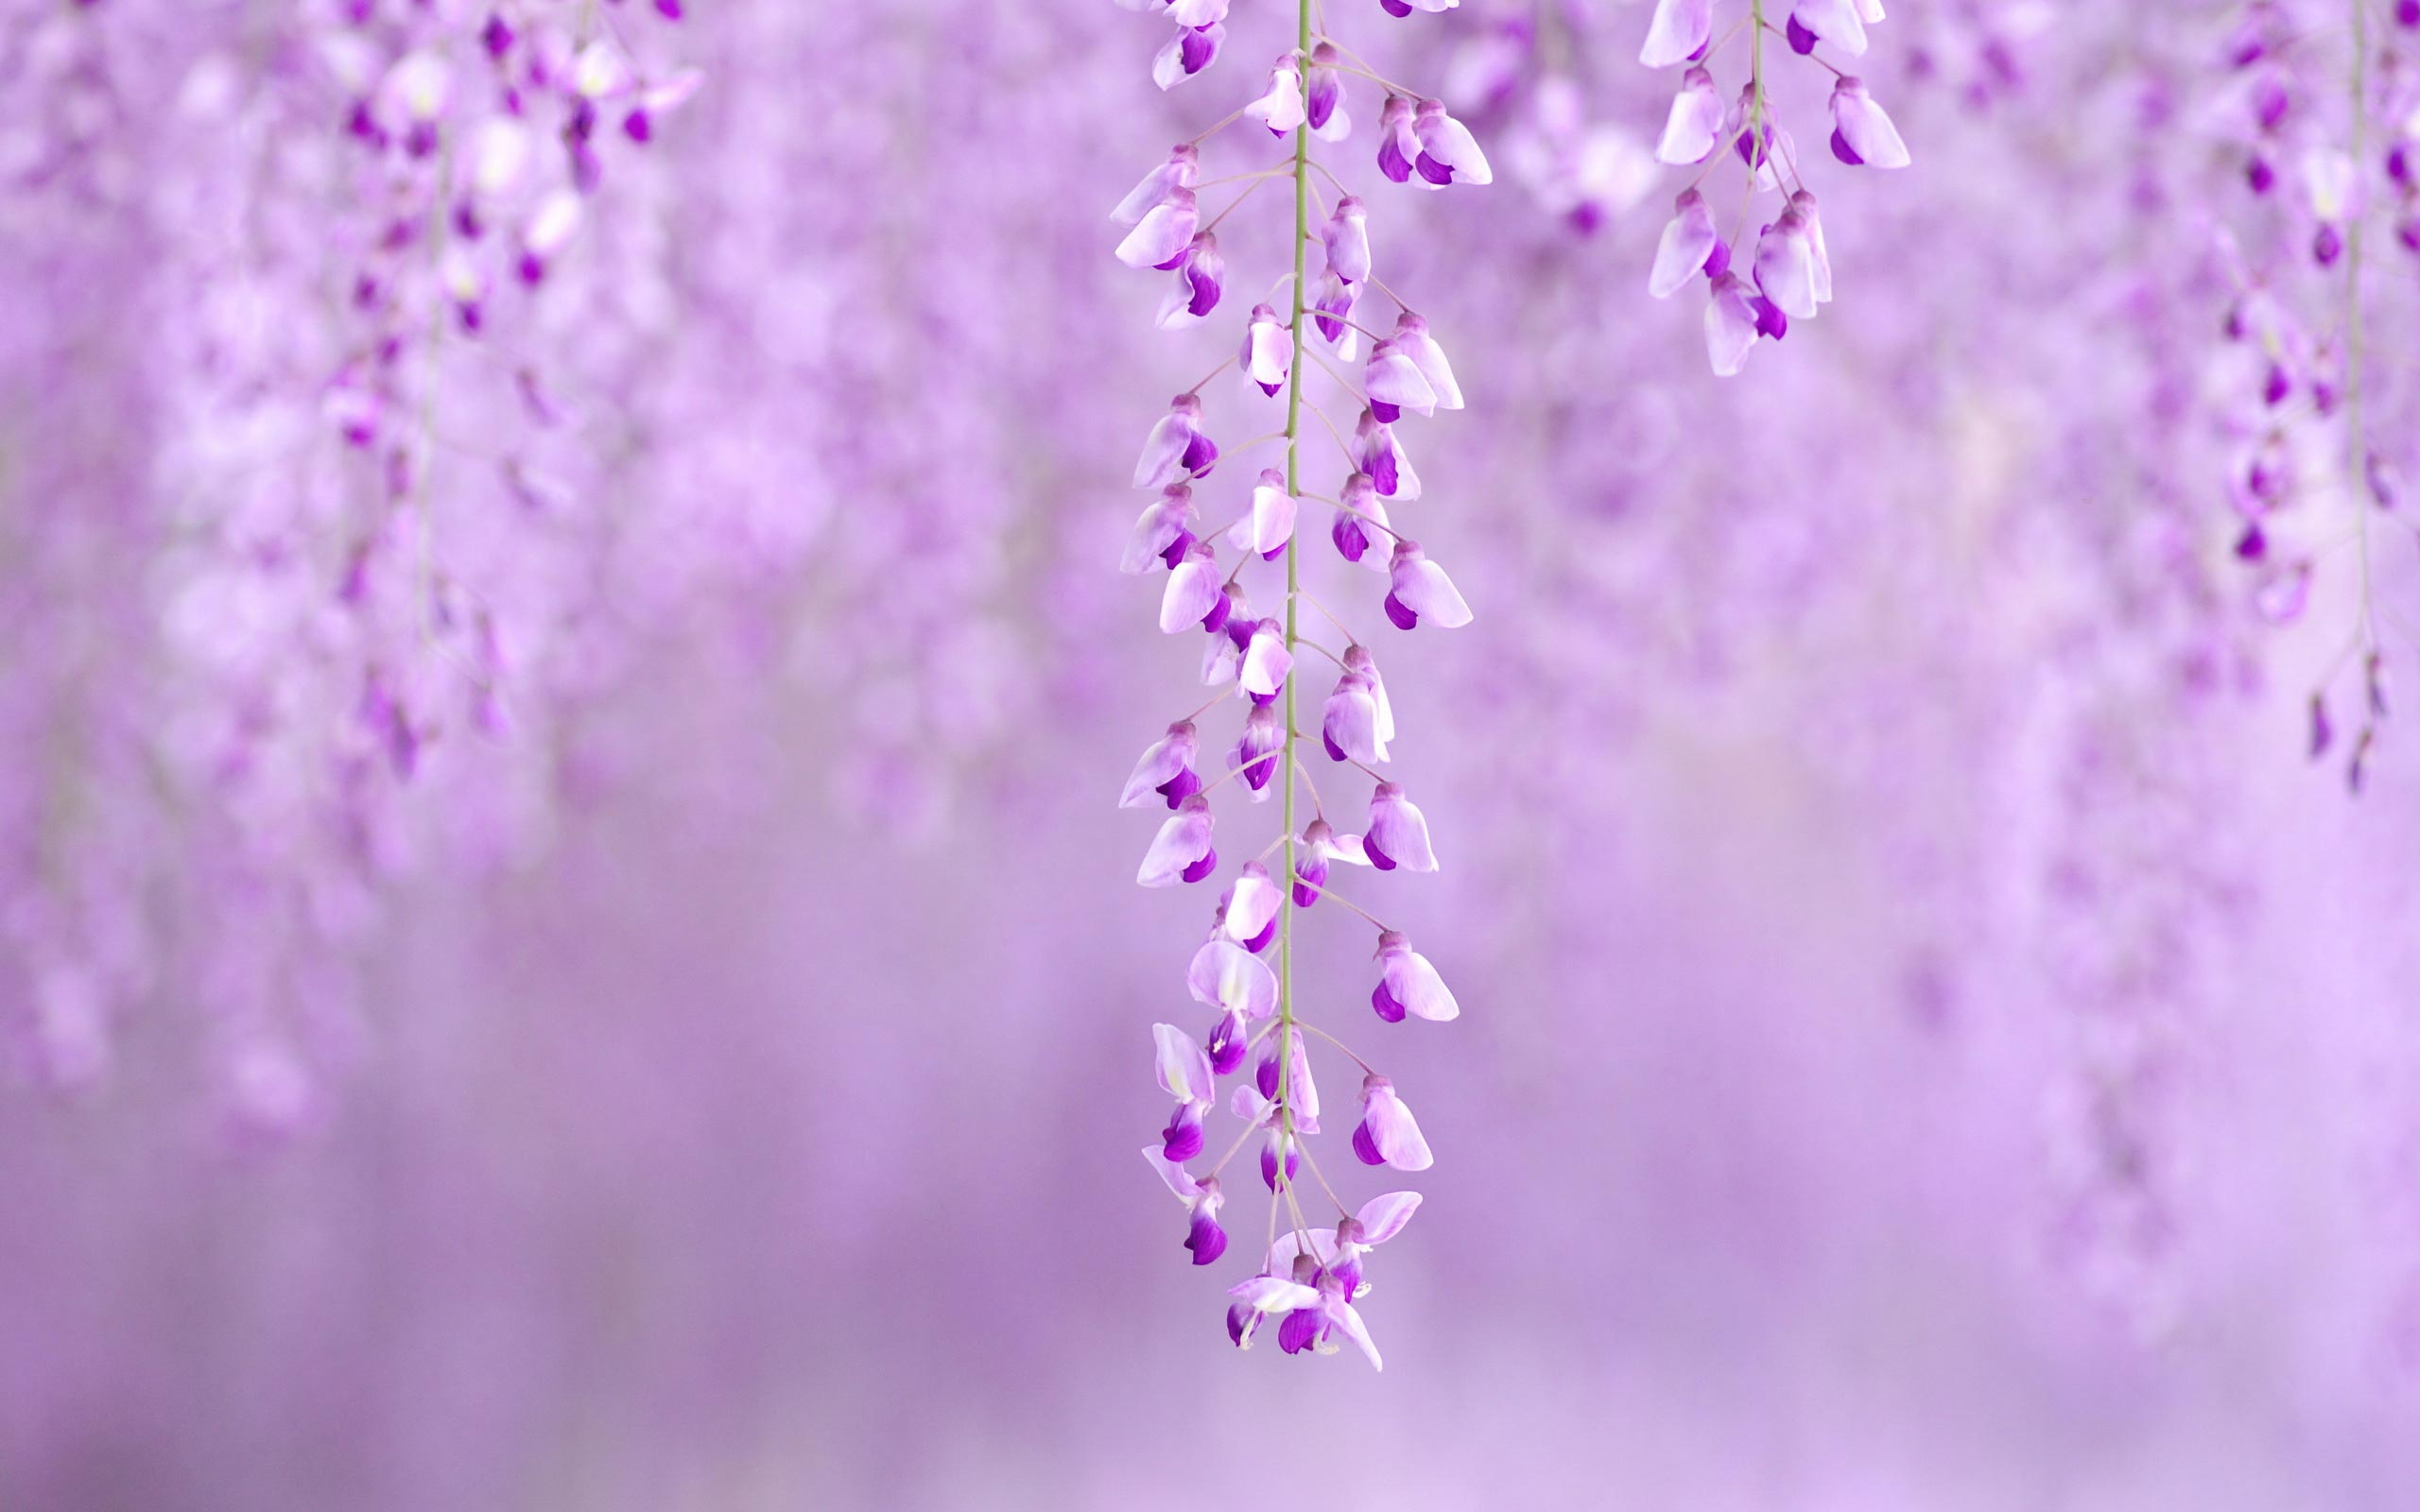 Wallpaper Spring Flowers Background 2560x1600